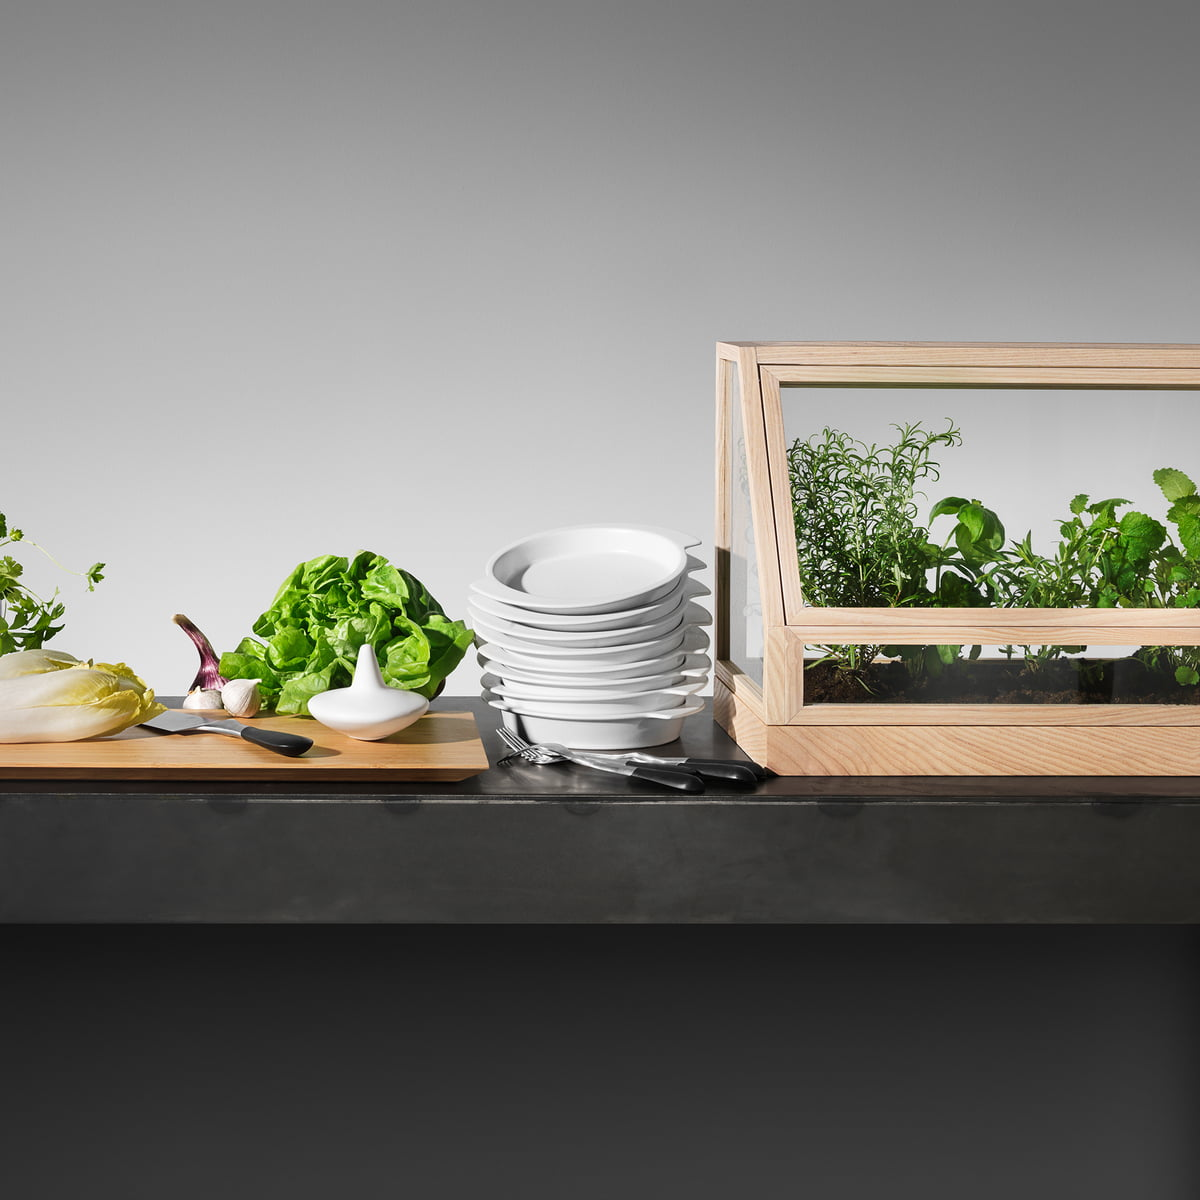 greenhouse mini by design house stockholm in ash - Dinnerware Design House Stockholm